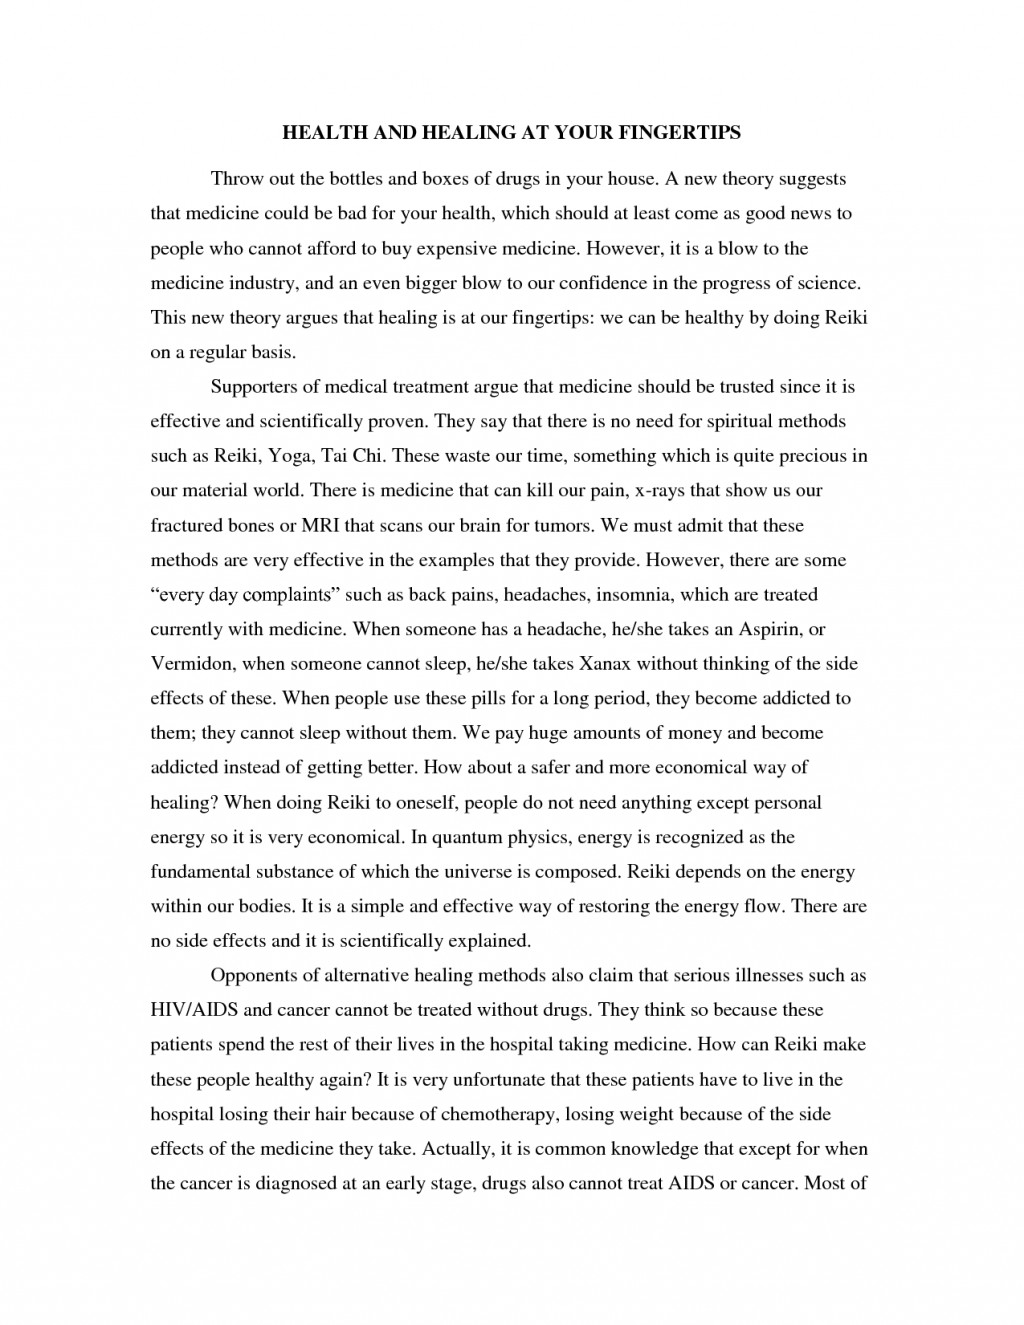 016 Mentor Argument Essay Page How To Write Good Argumentatives Astounding Argumentative Examples Ap Lang Sample Pdf Download For Middle School Large